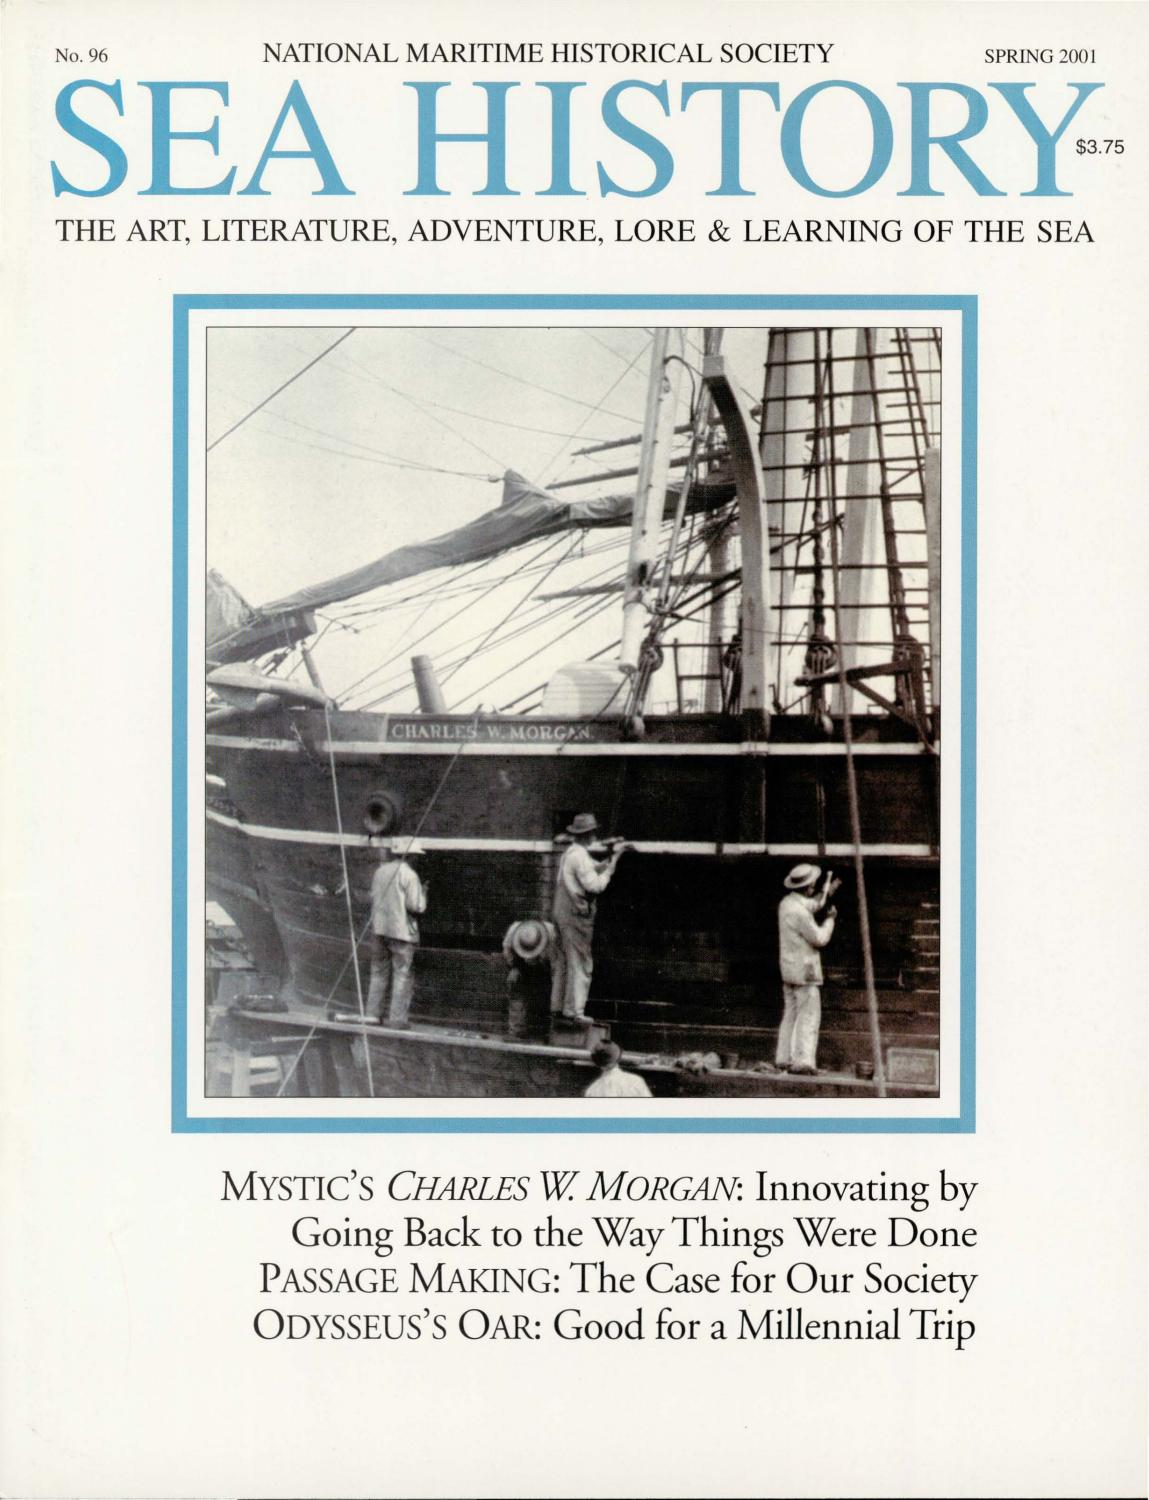 Sea History 096 - Spring 2001 by National Maritime